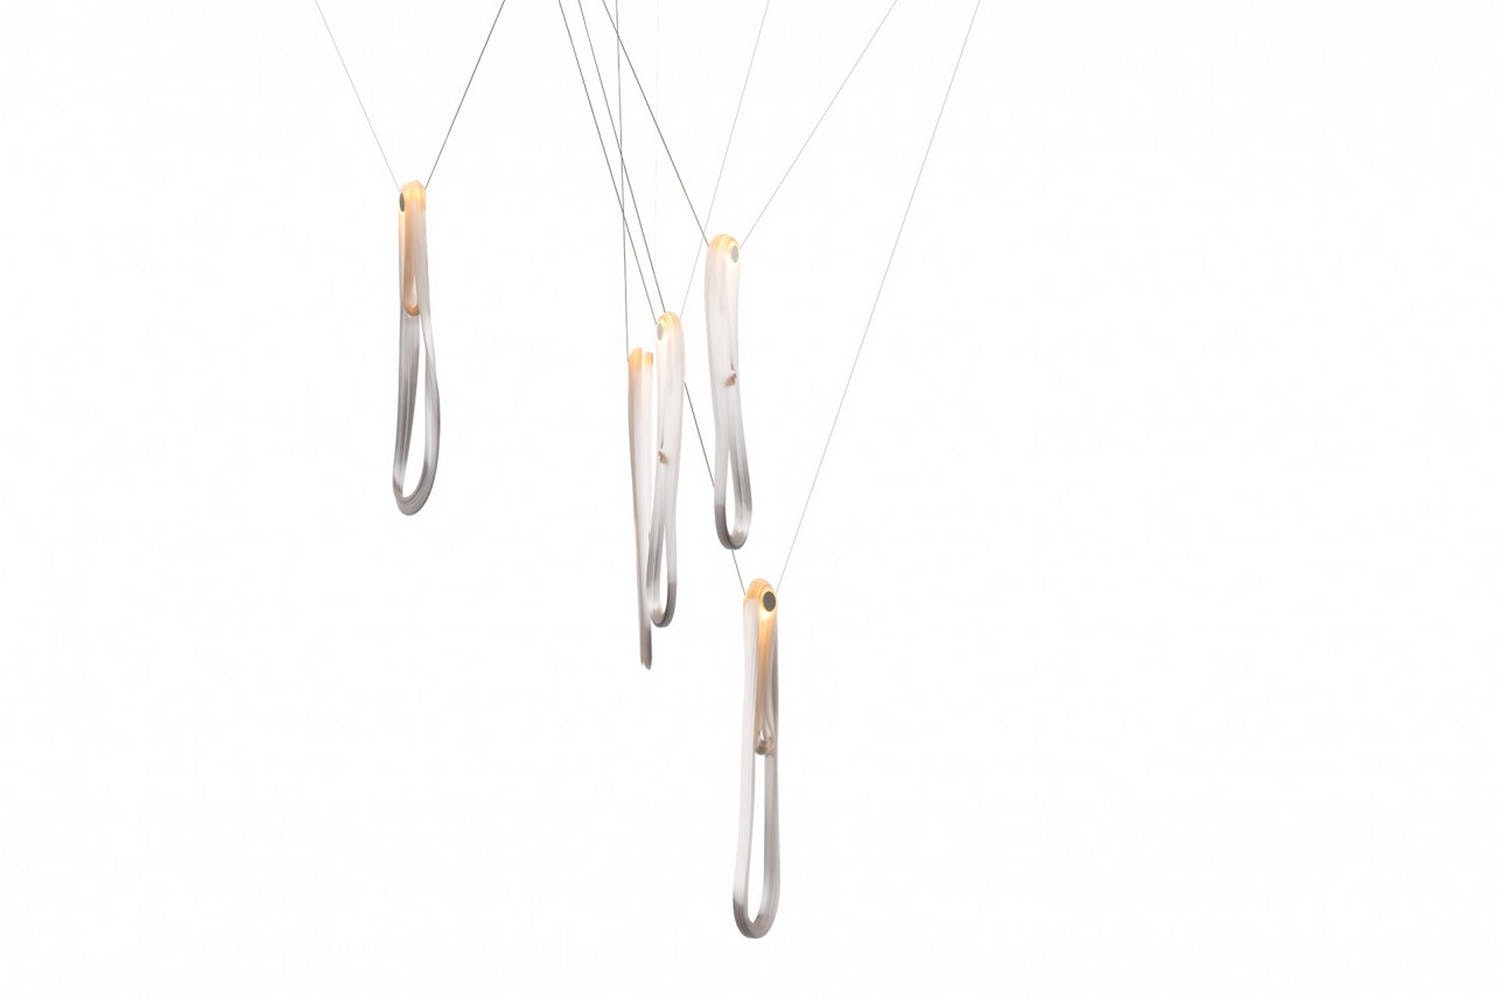 87.5 Suspension Lamp by Omer Arbel for Bocci